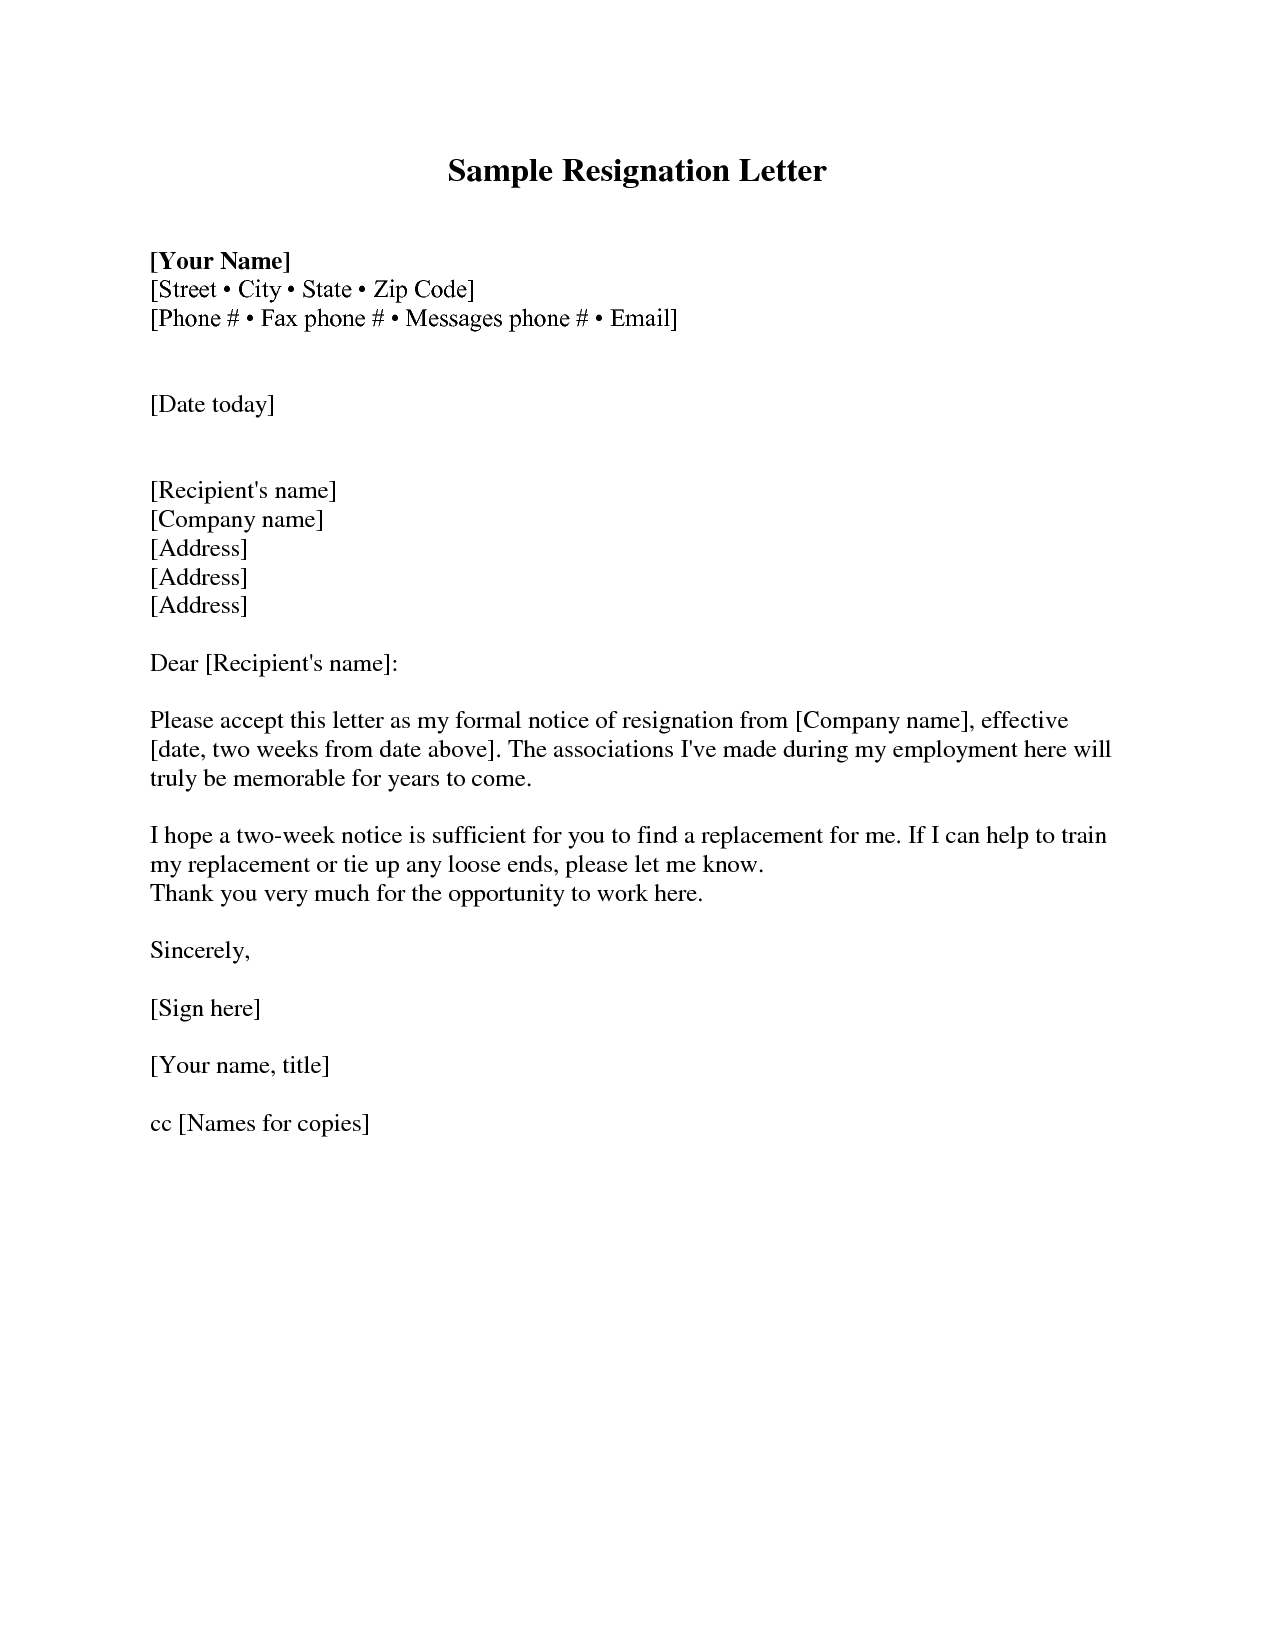 Sample Blank Two Weeks Notice Resignation Letter